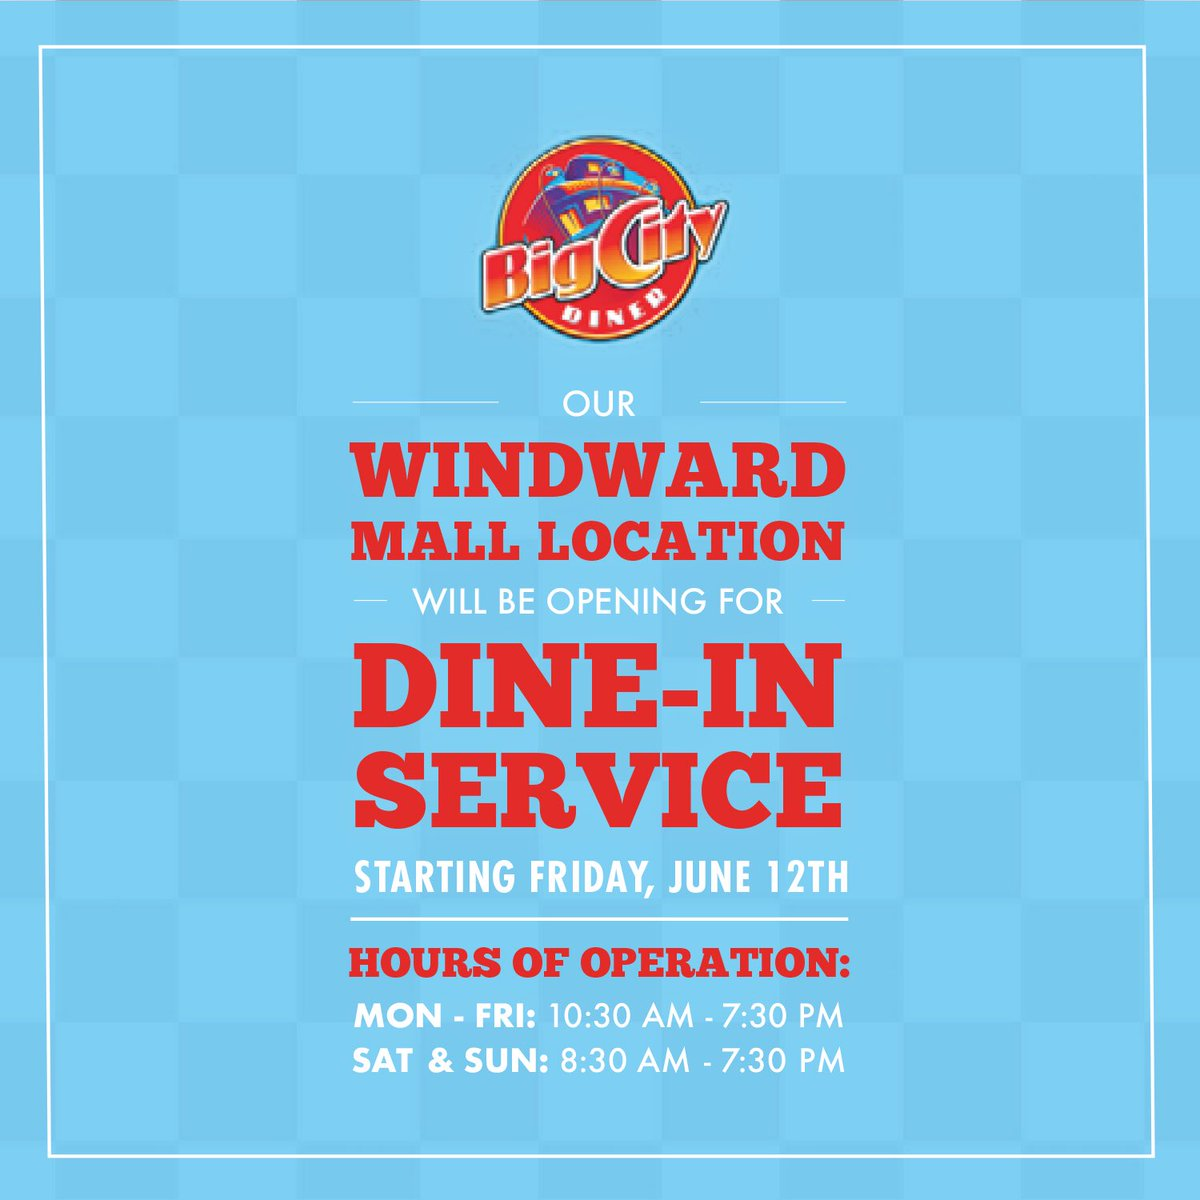 @BigCityDiner at @WindwardMall is NOW OPEN for DINE🍔IN, TAKEOUT & HOME🚗DELIVERY from 10:30 am-7:30 pm (Monday-Friday) & from 8:30 am-7:30 pm (Saturday & Sunday) #BigCityDiner #WindwardMall #HAWAII #Fish #ComfortFood #Breakfast #Lunch #Dinner #Yummy https://t.co/CQHfH5T6tt